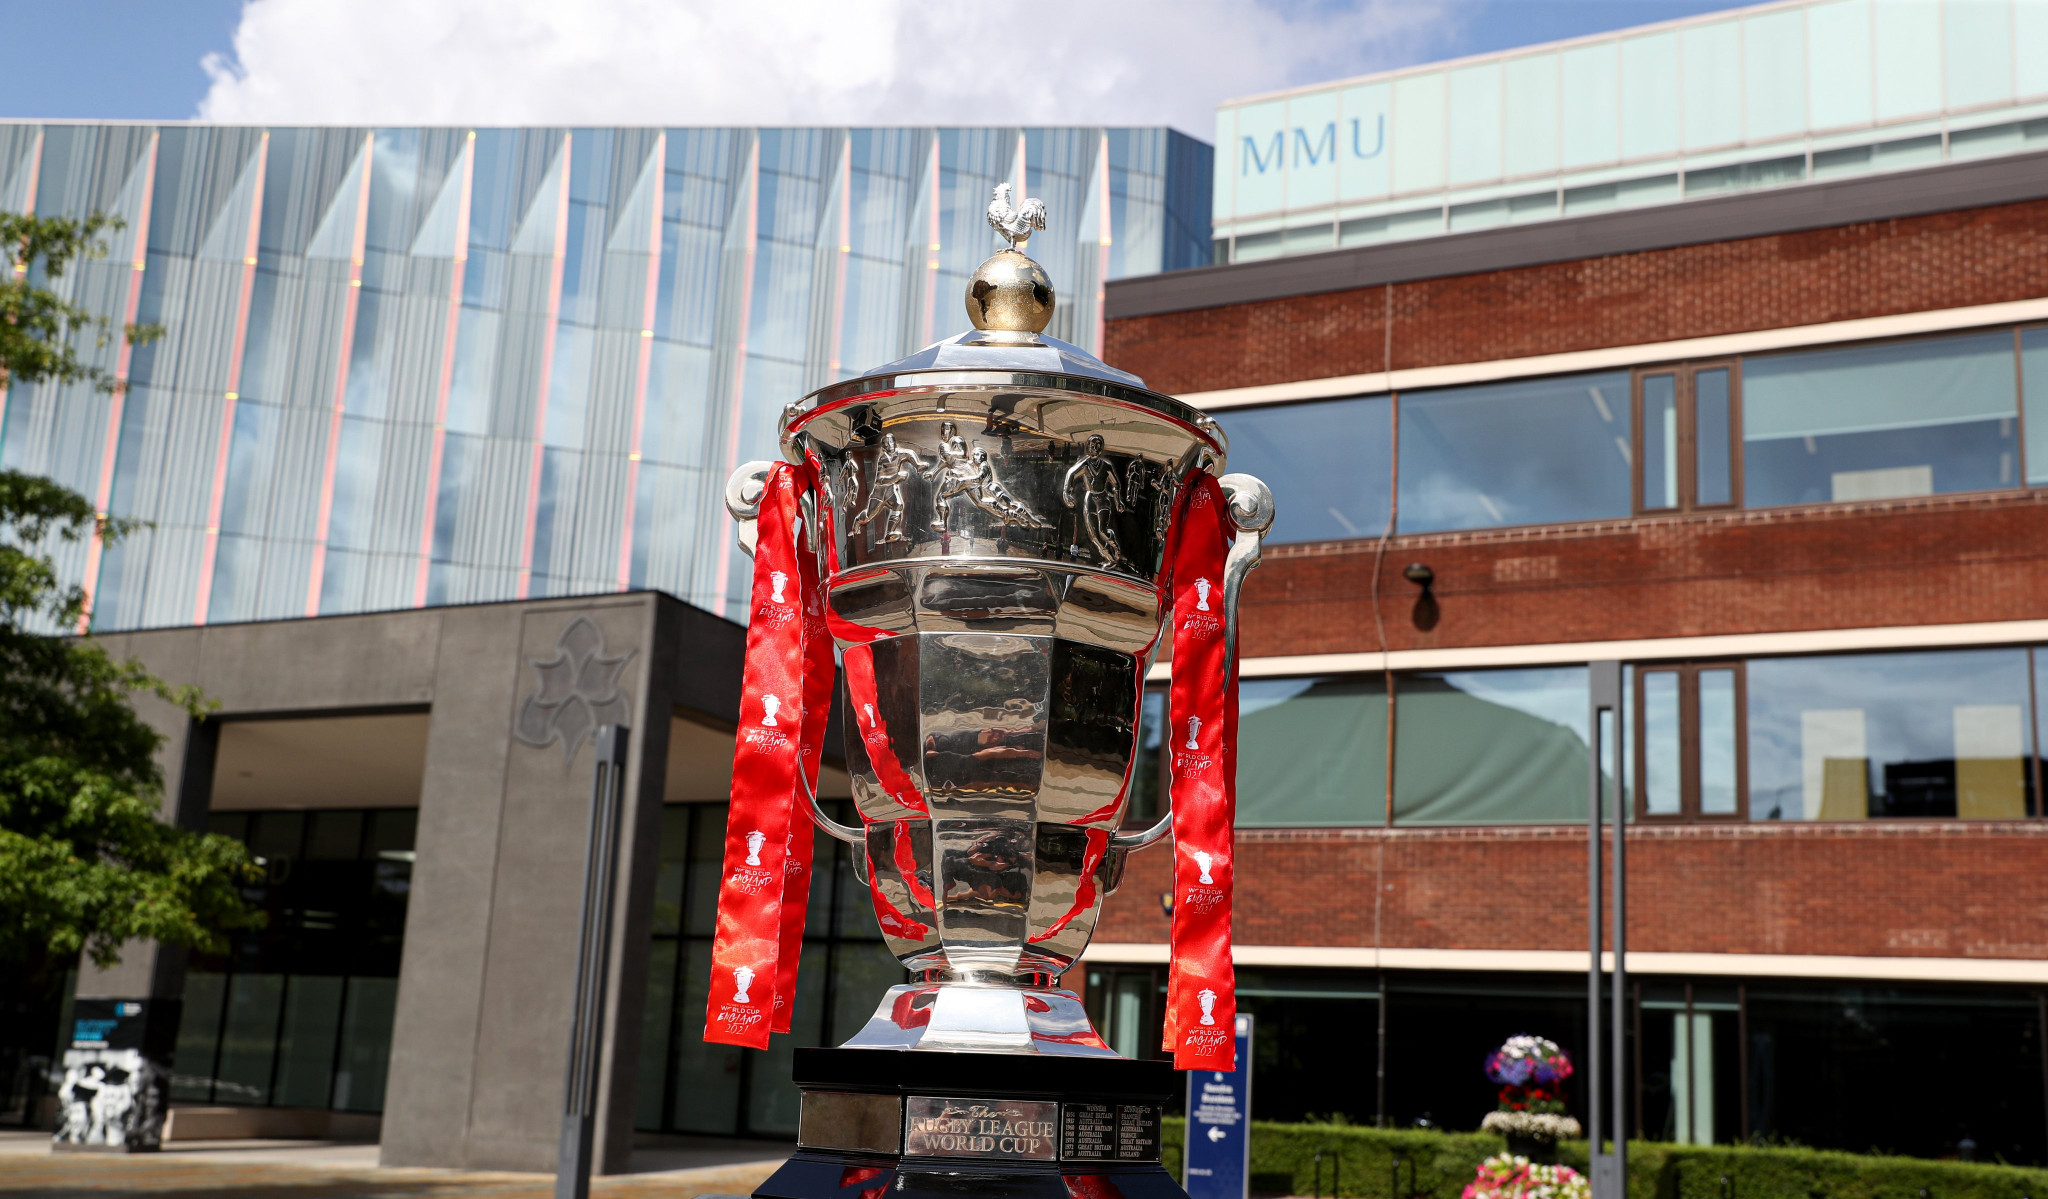 Rugby League World Cup organisers announce procurement experts as official supplier for 2021 tournament